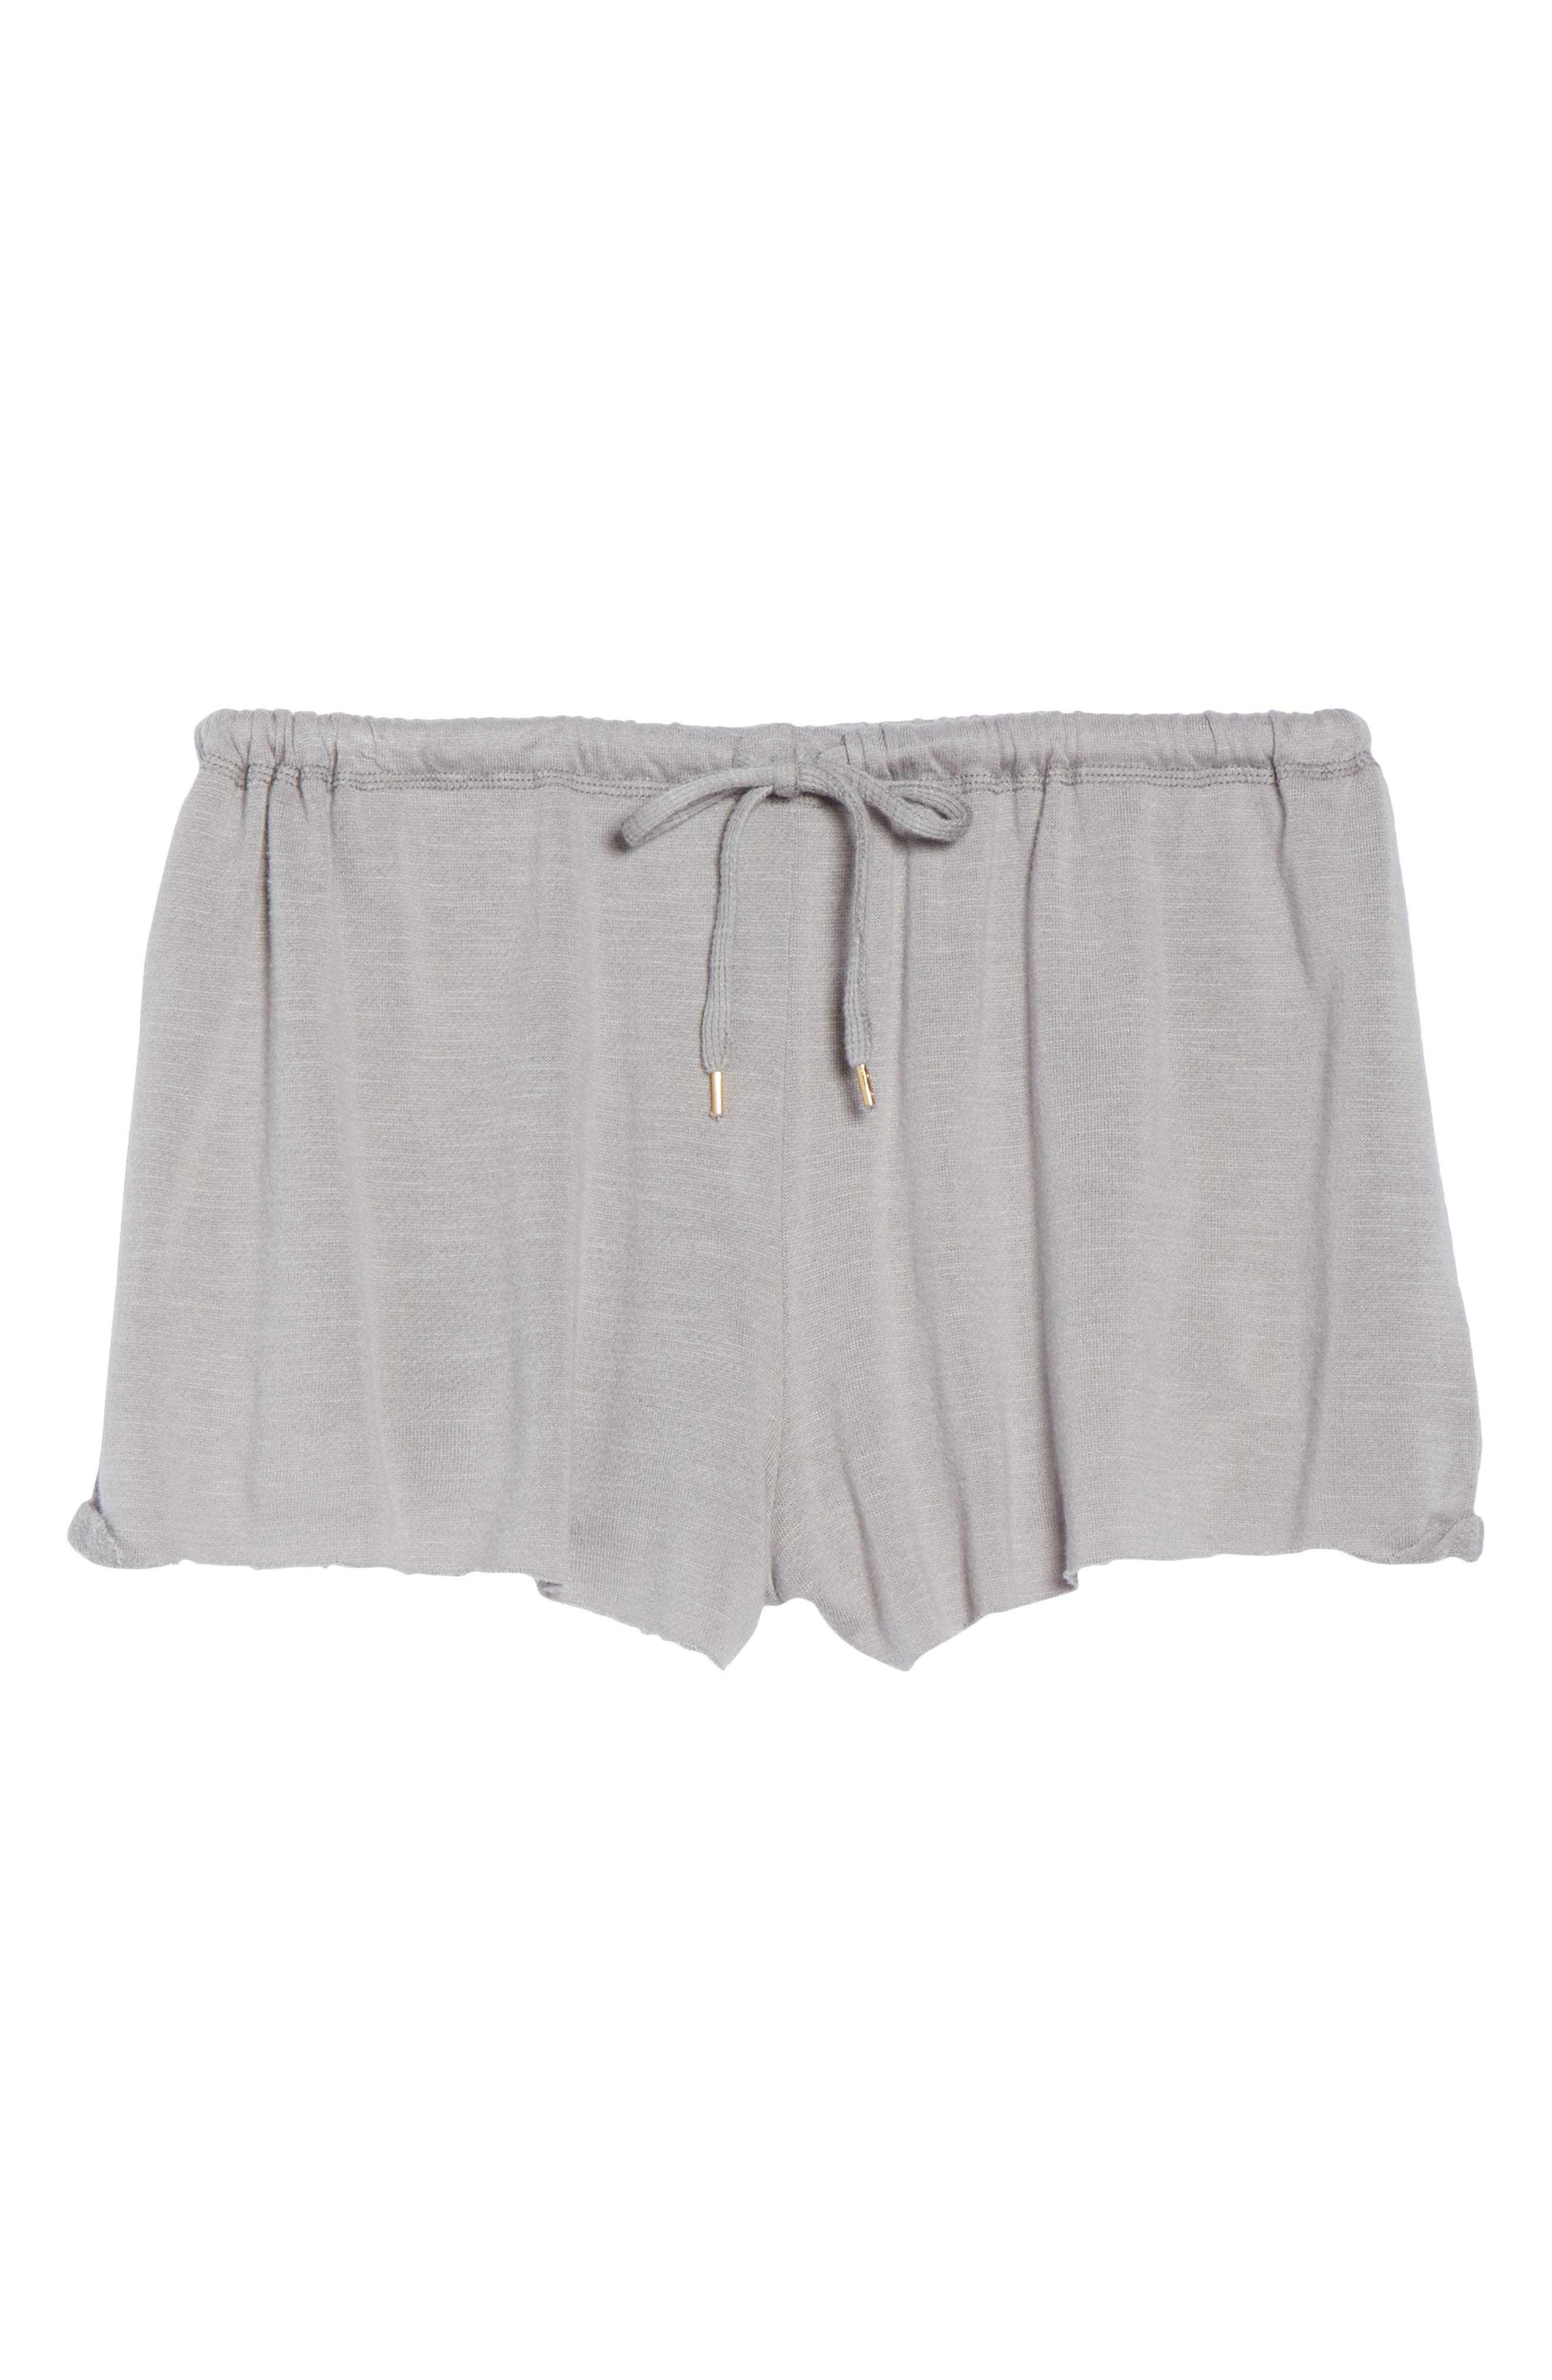 French Terry Lounge Shorts,                             Alternate thumbnail 11, color,